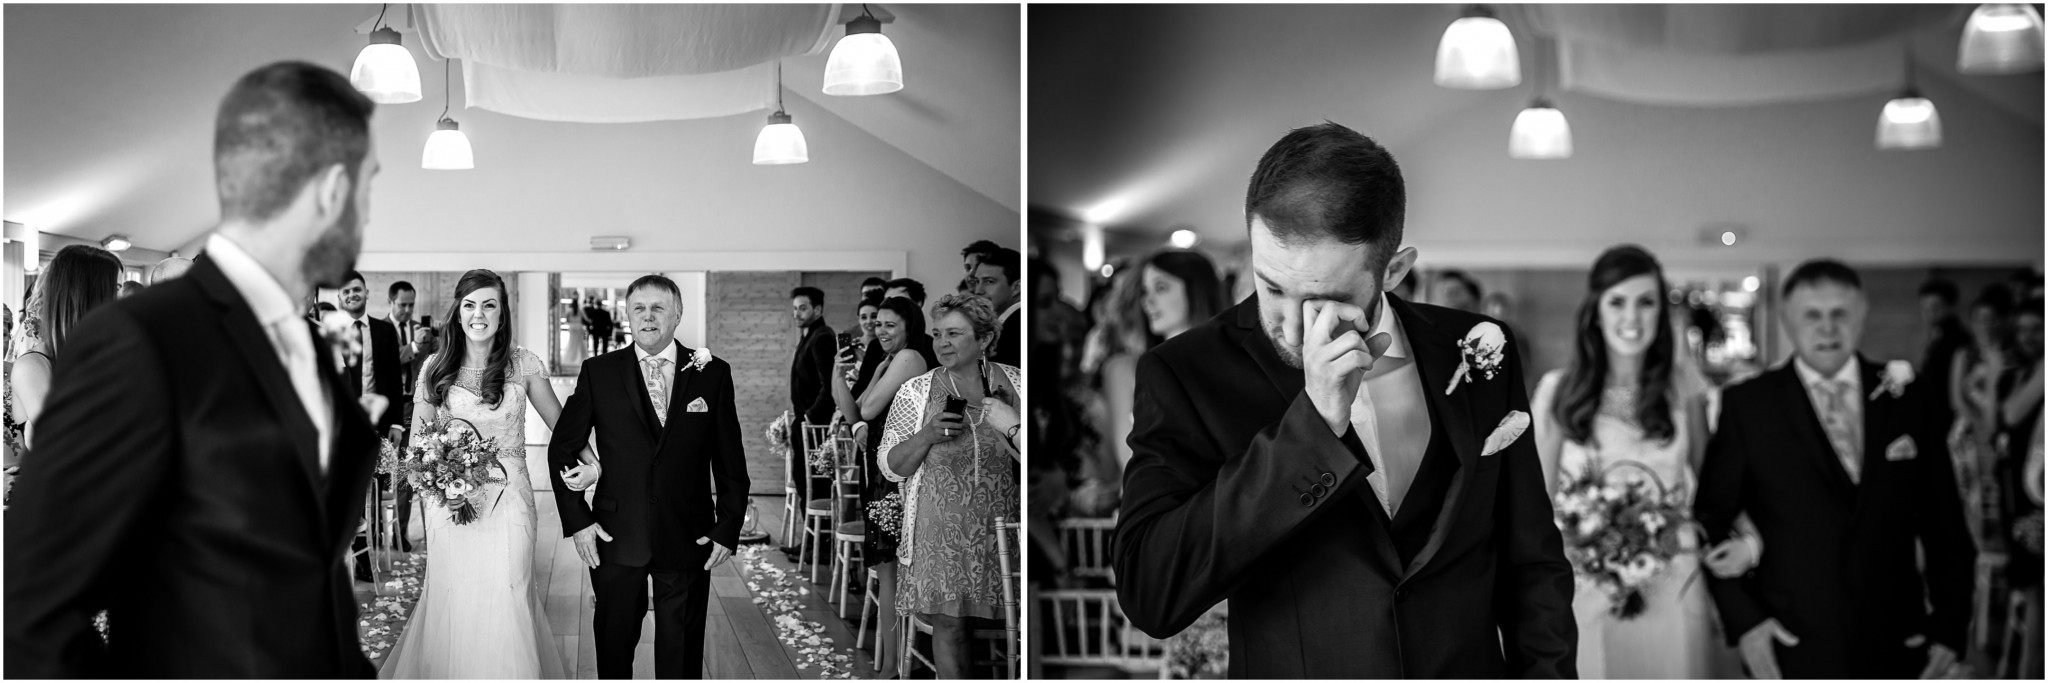 Wasing Park Wedding Photography Groom reaction to Bride